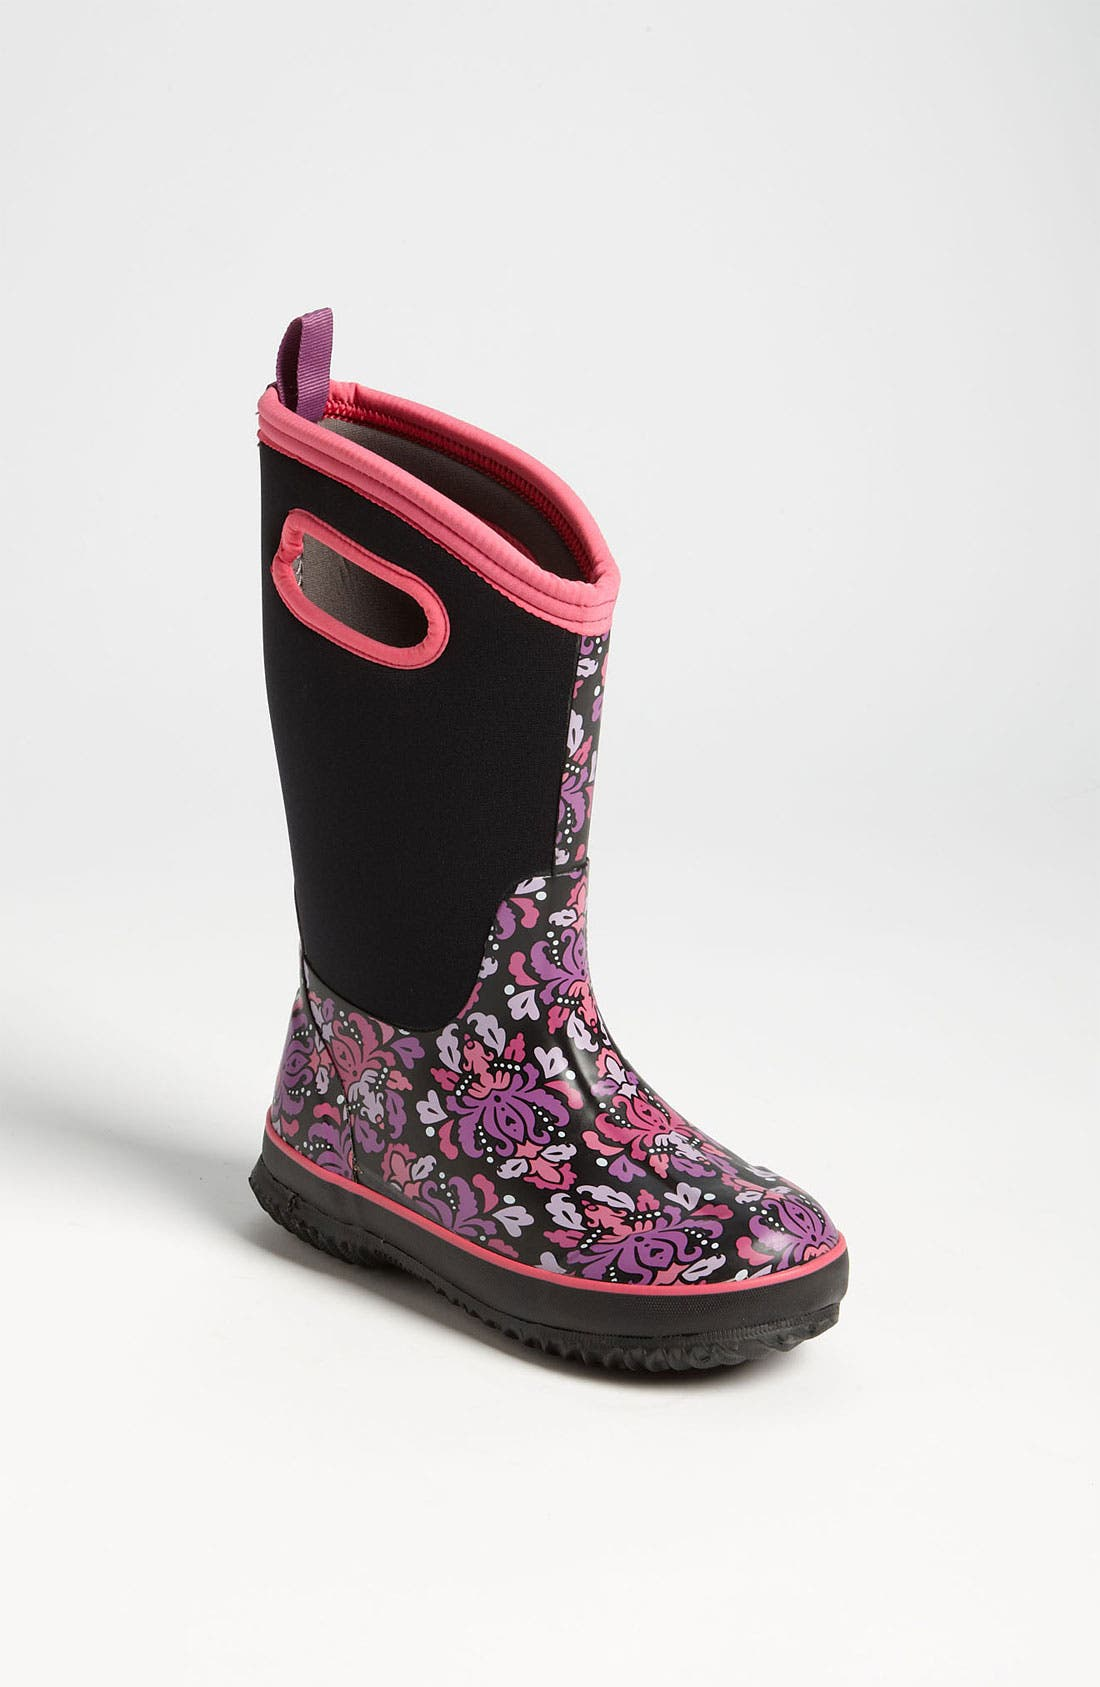 Main Image - Bogs 'Classic High - Fleur' Waterproof Boot (Toddler, Little Kid & Big Kid) (Nordstrom Exclusive)